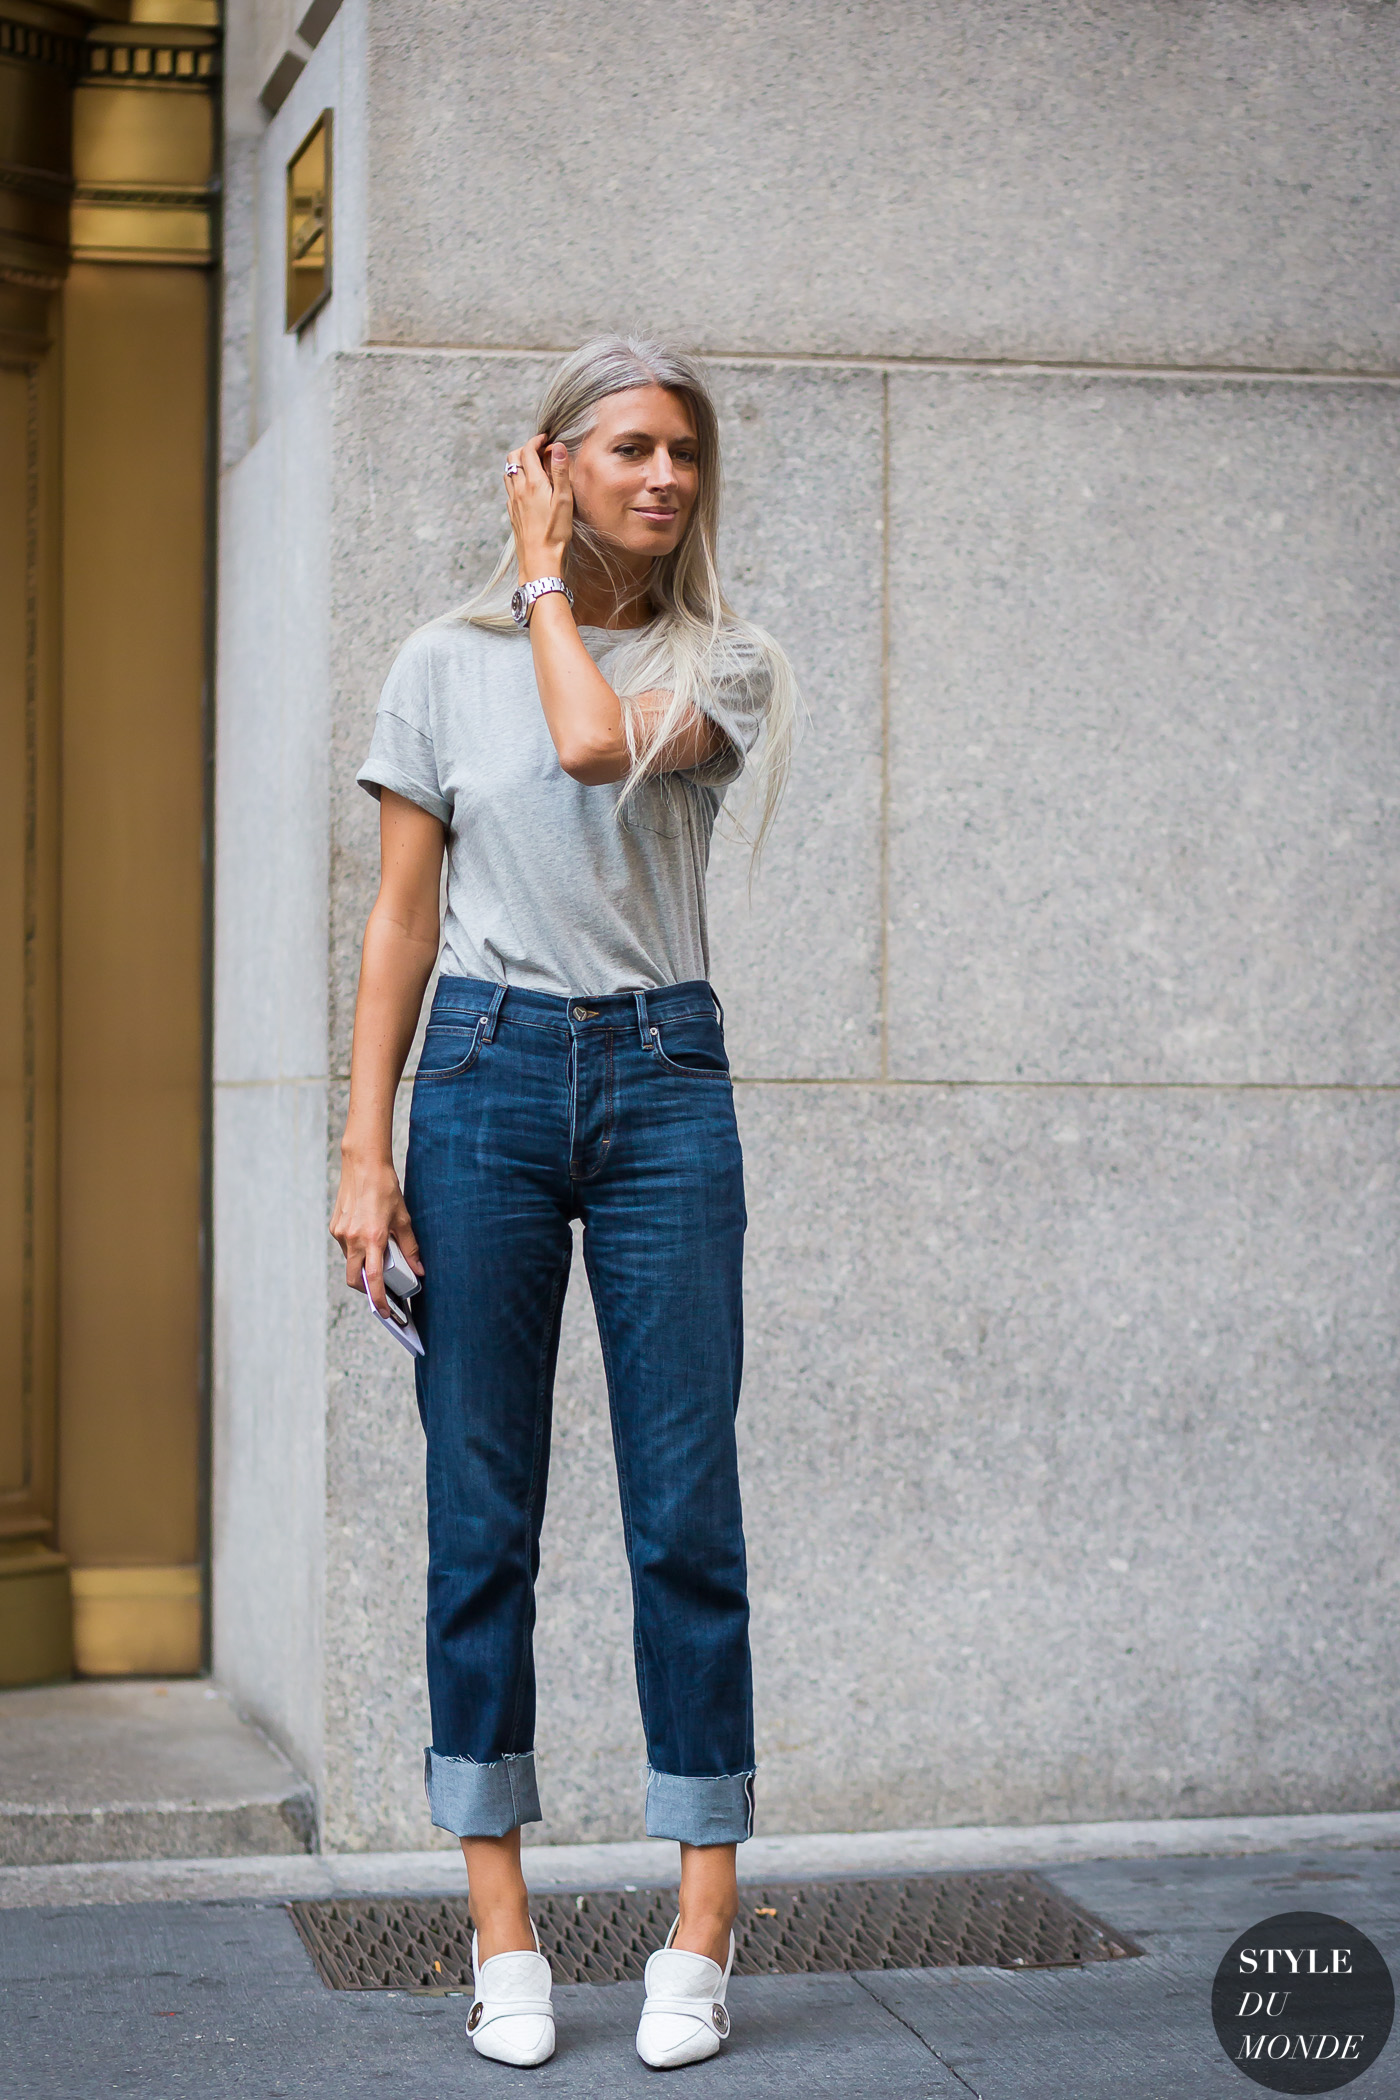 New York Fashion Week SS 2016 Street Style: Sarah Harris ...